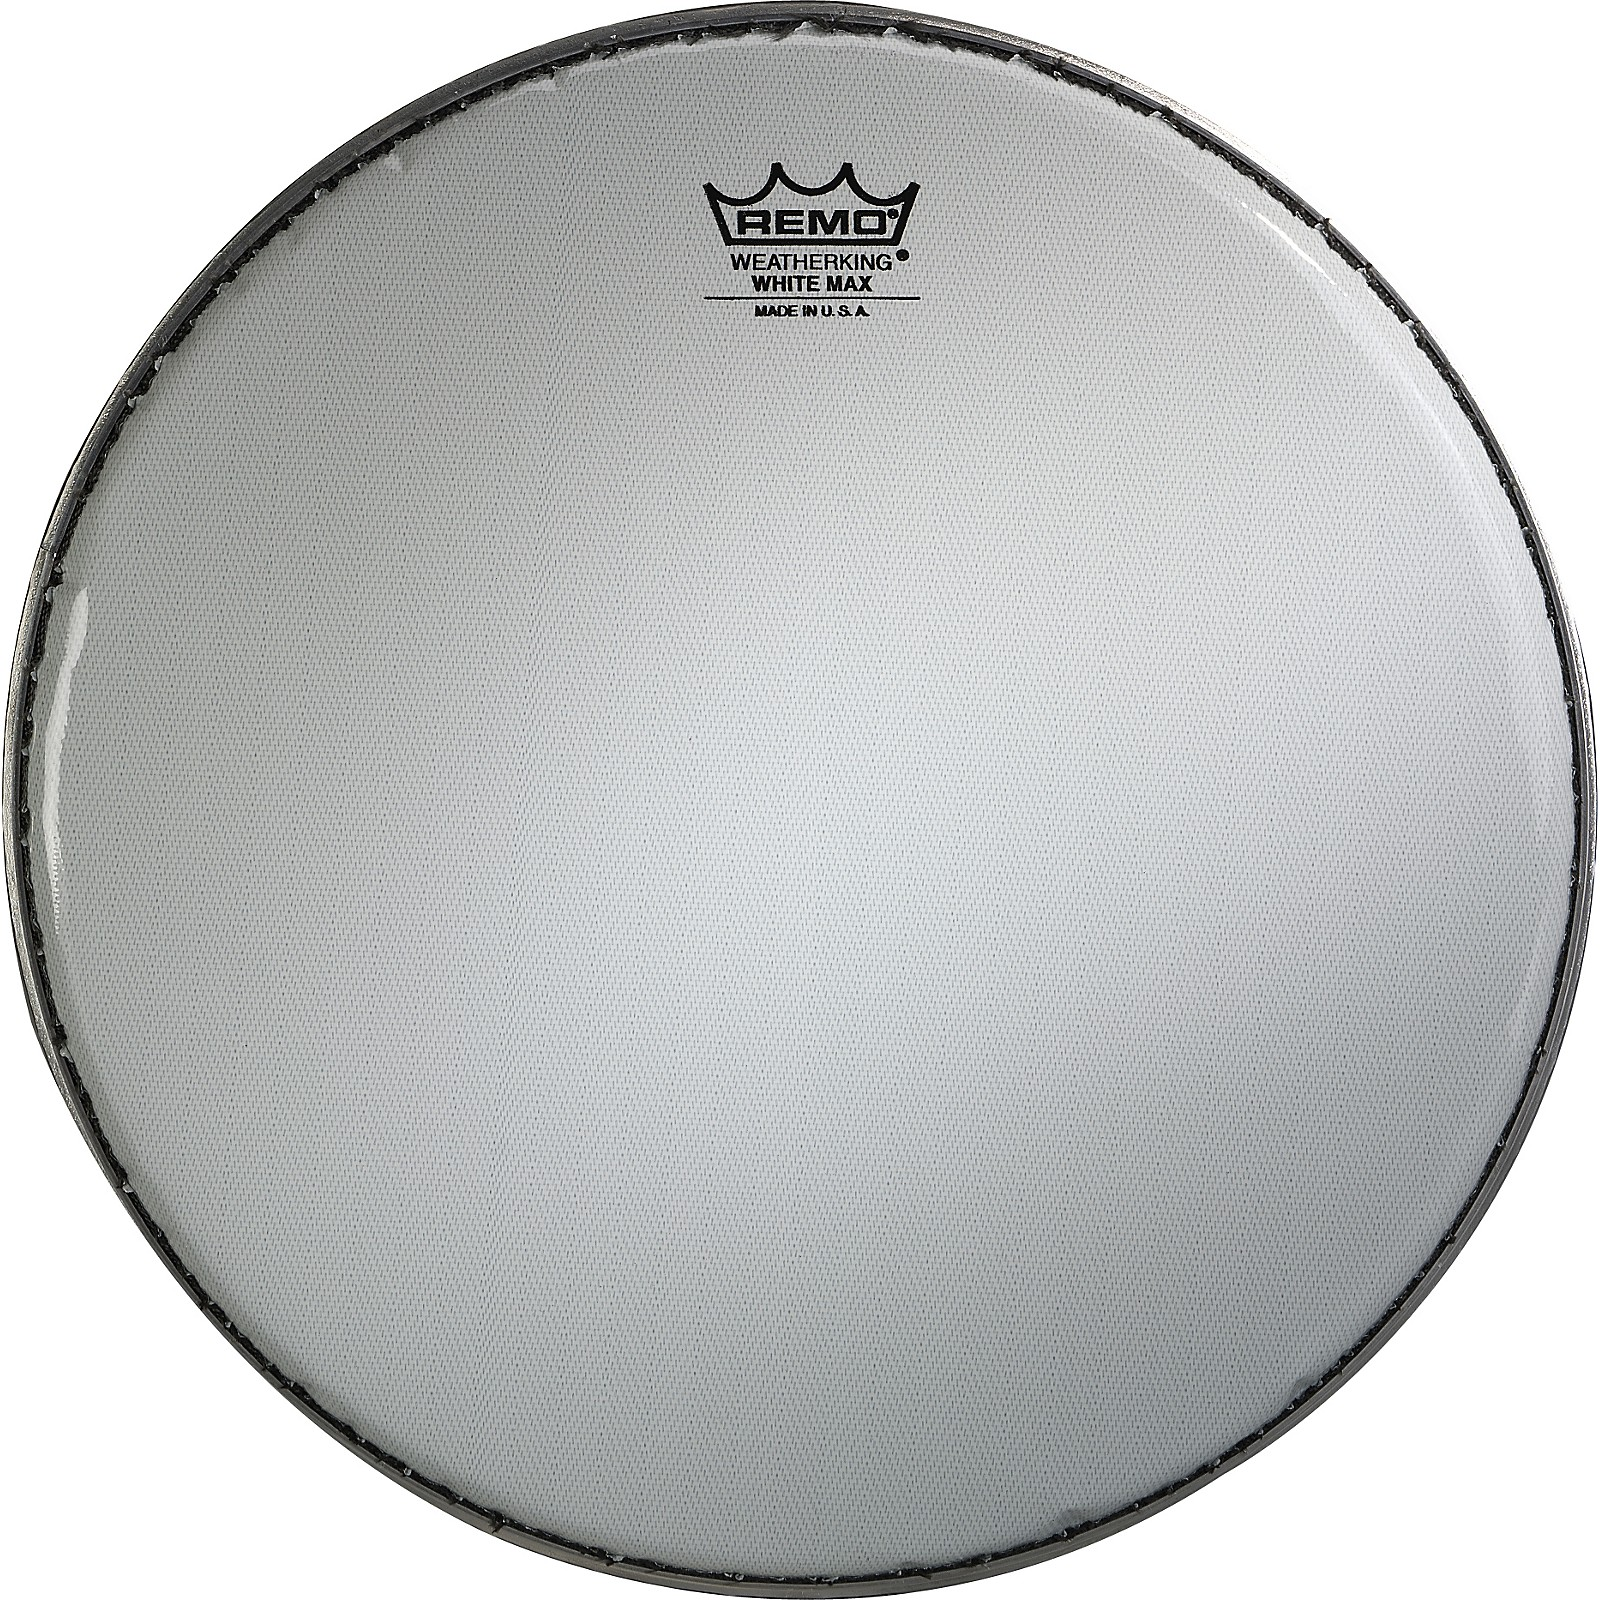 """Remo 14/"""" Drum Head White Max Crimped Smooth White Marching Snare Drum Head"""